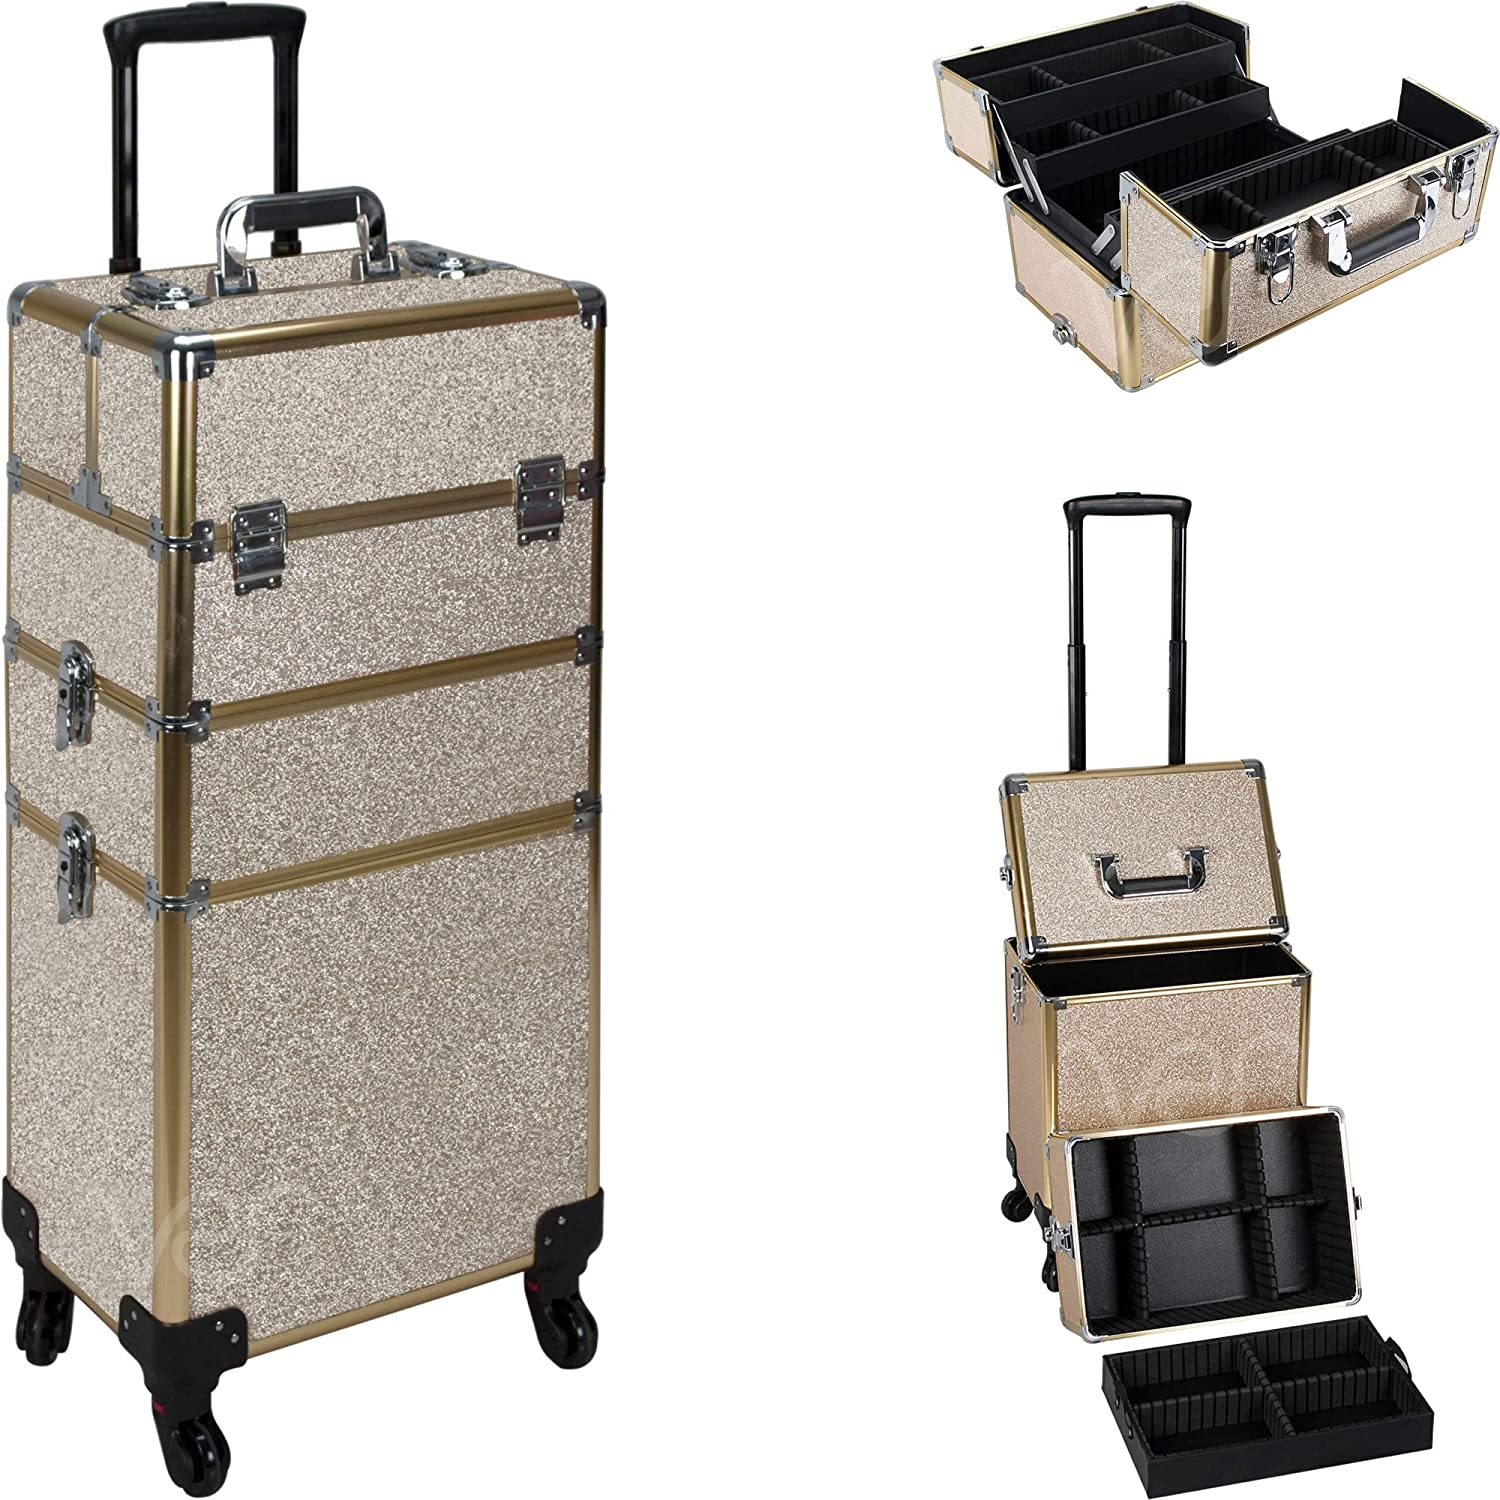 Ver Beauty 7-in-1 Professional 4 Wheels Removable Rolling Cosmetic Makeup Artist Train Case Organizer Travel Adjustable Dividers – Vr6506, Champagne Gold Glitter